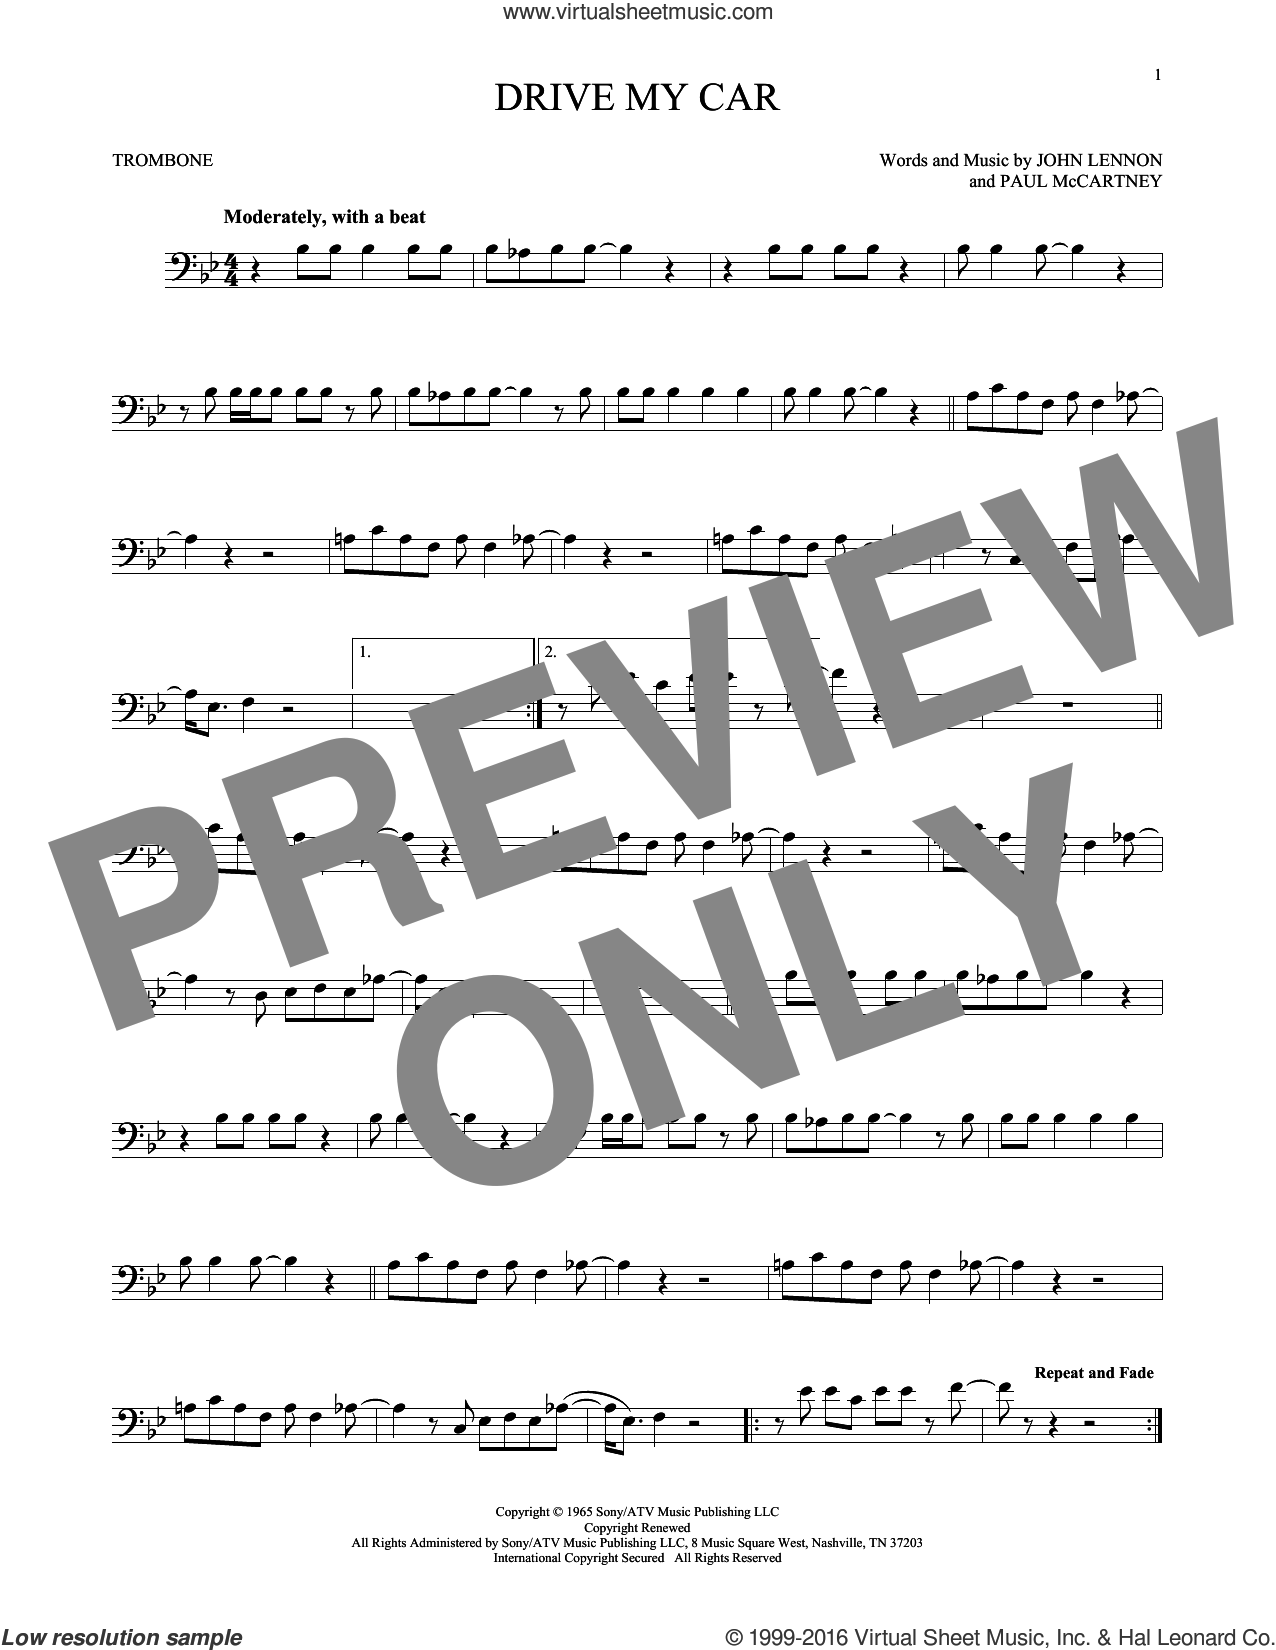 Drive My Car sheet music for trombone solo by The Beatles, John Lennon and Paul McCartney, intermediate skill level